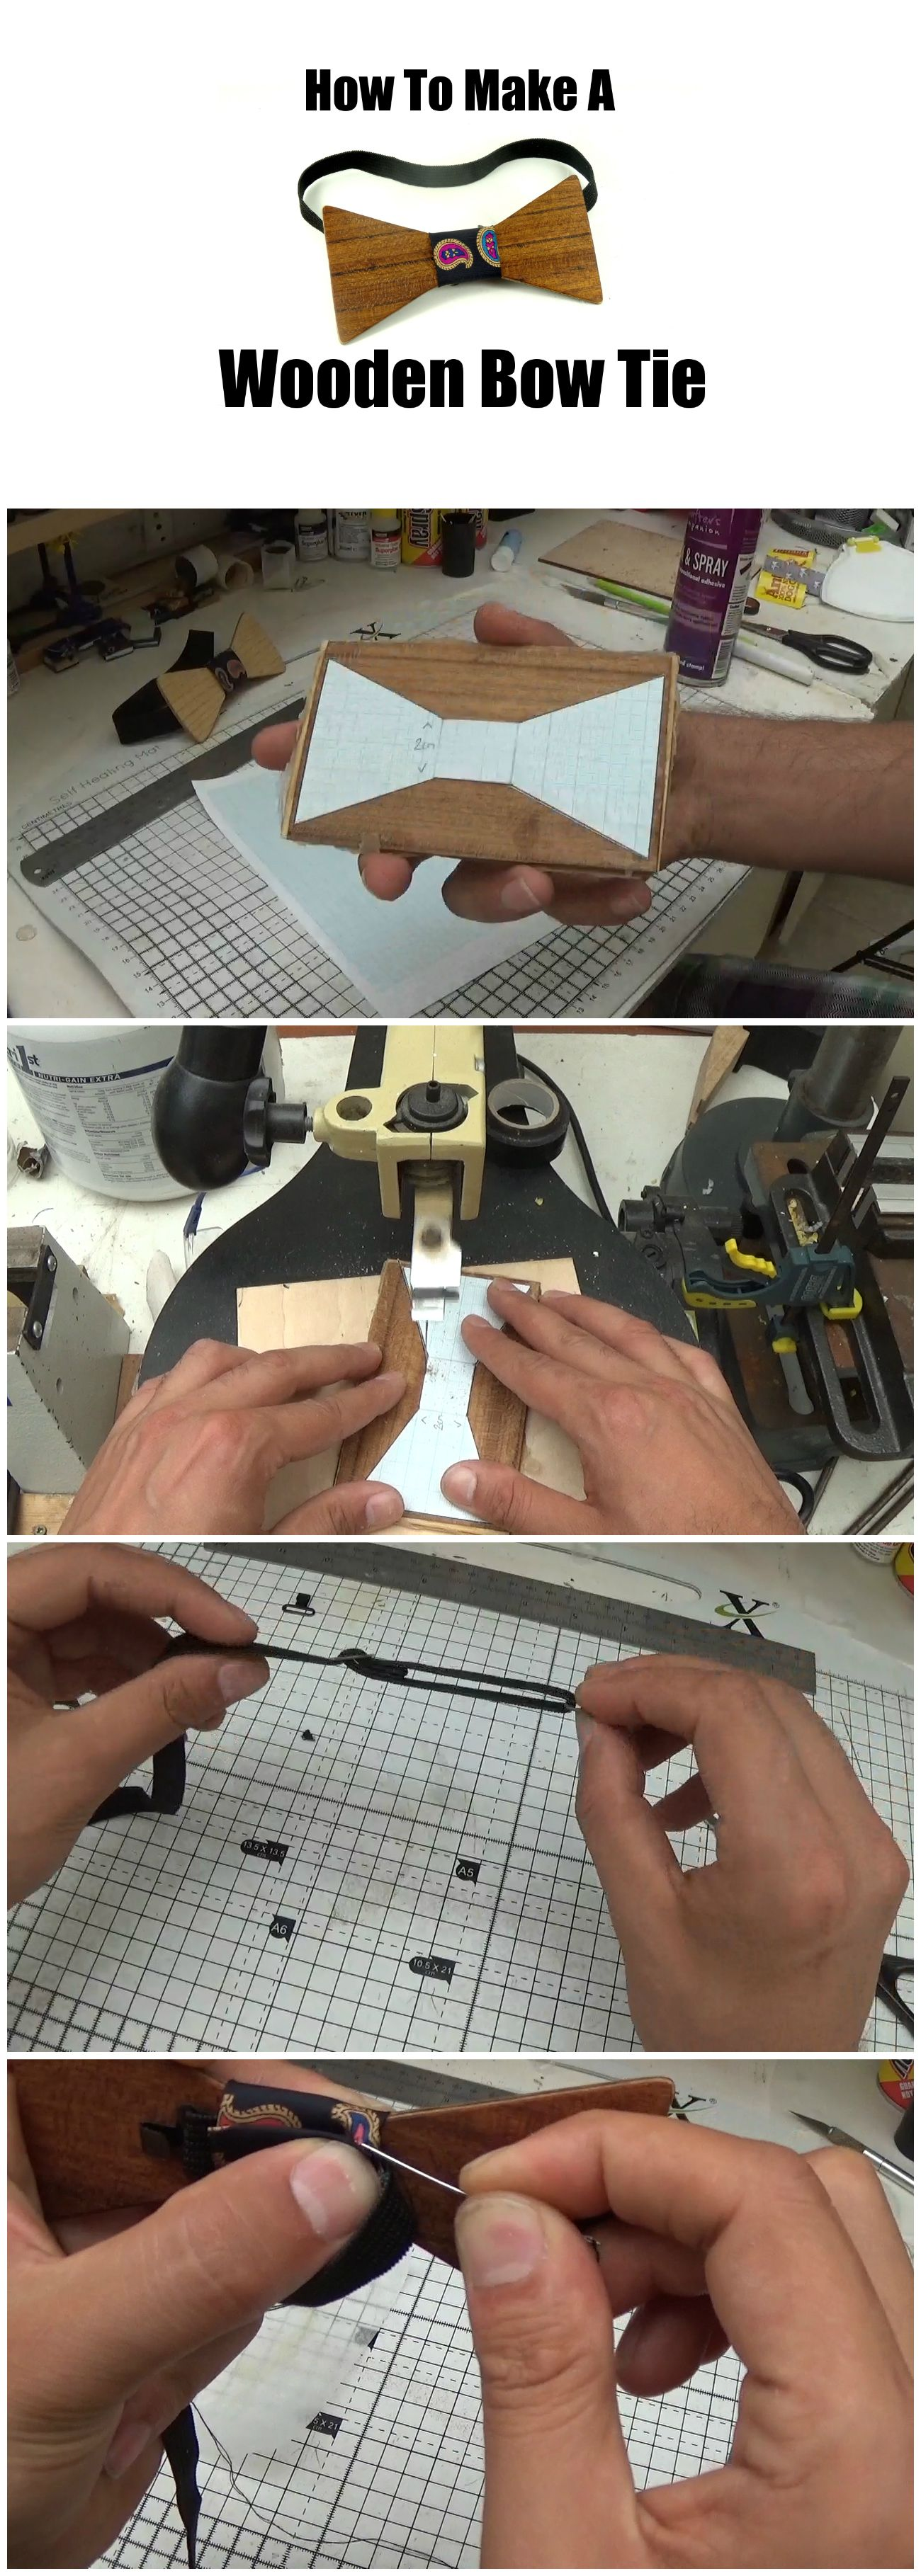 Learn How To Make A Wooden Bow Tie In This Tutorial By Zebrano Wood